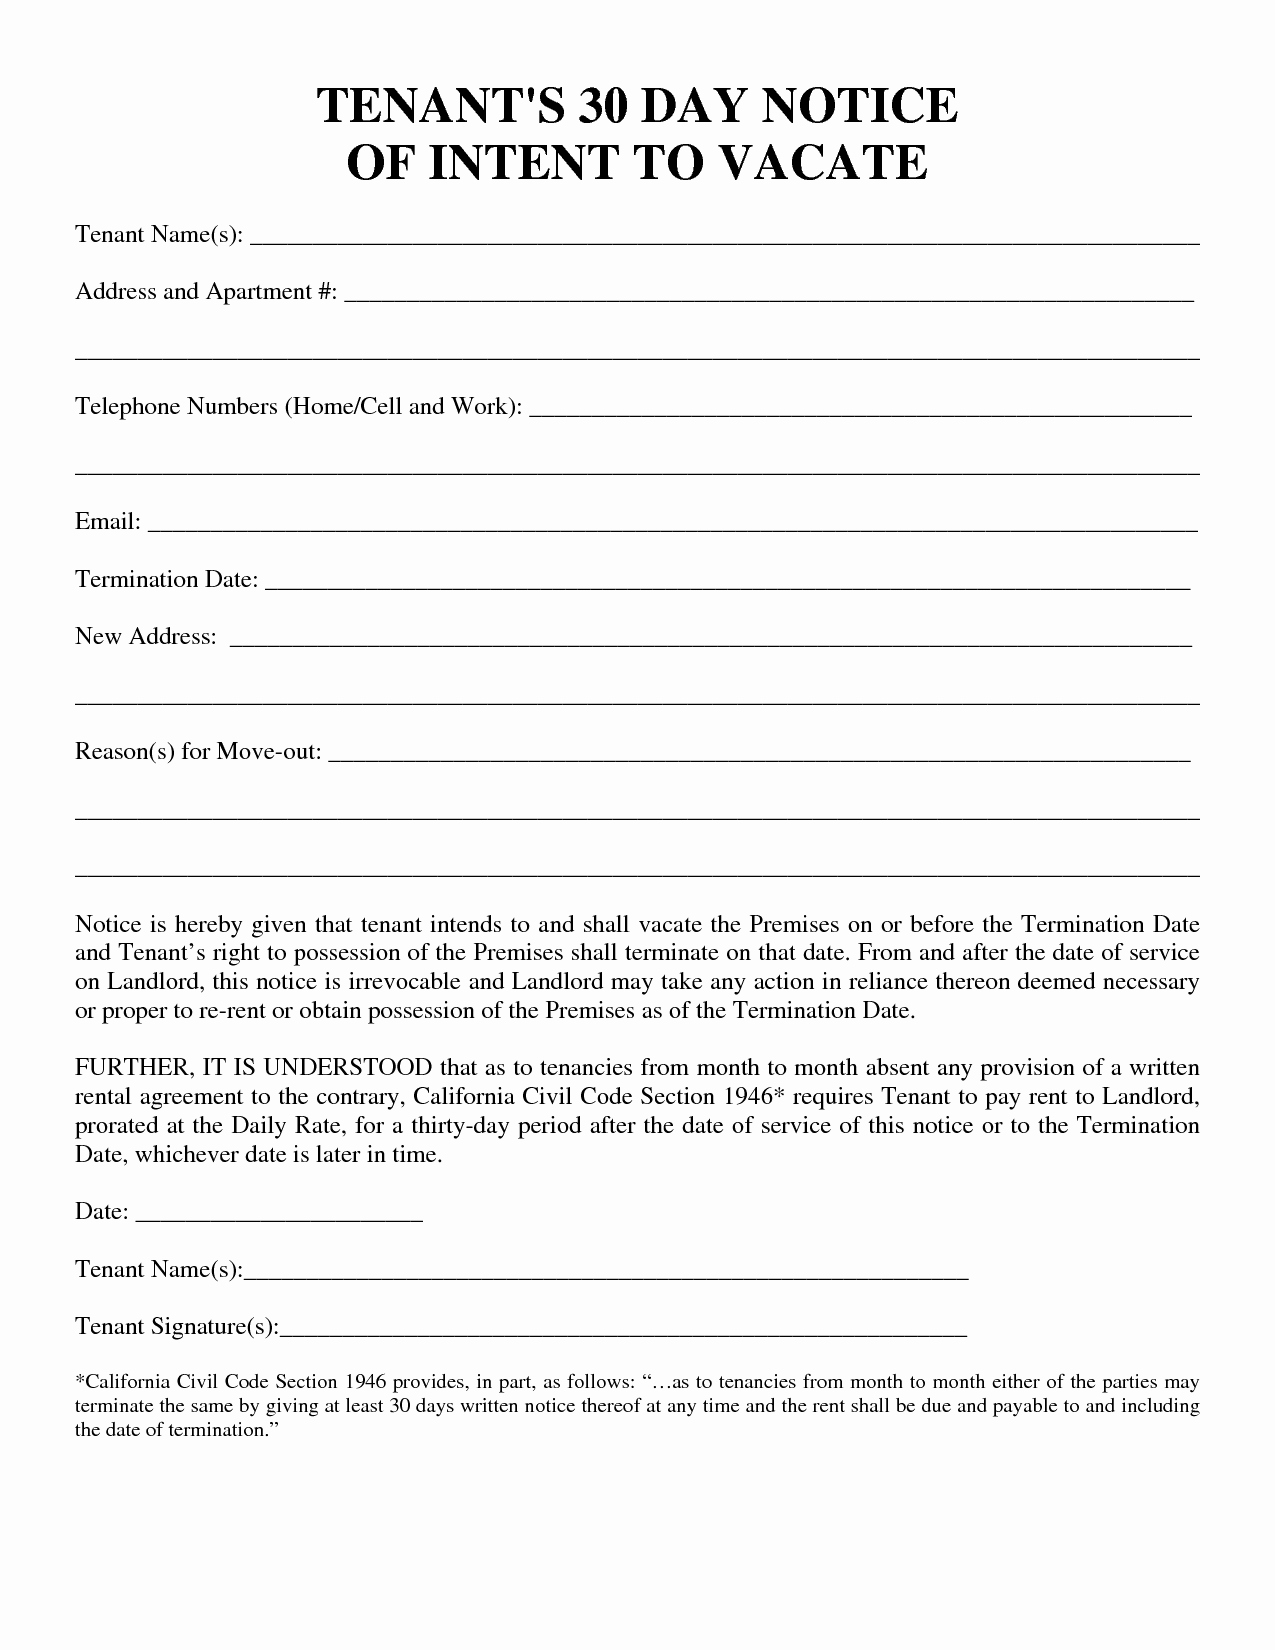 Letters Of Moving Out Notice Fresh 30 Day Notice to Vacate Template